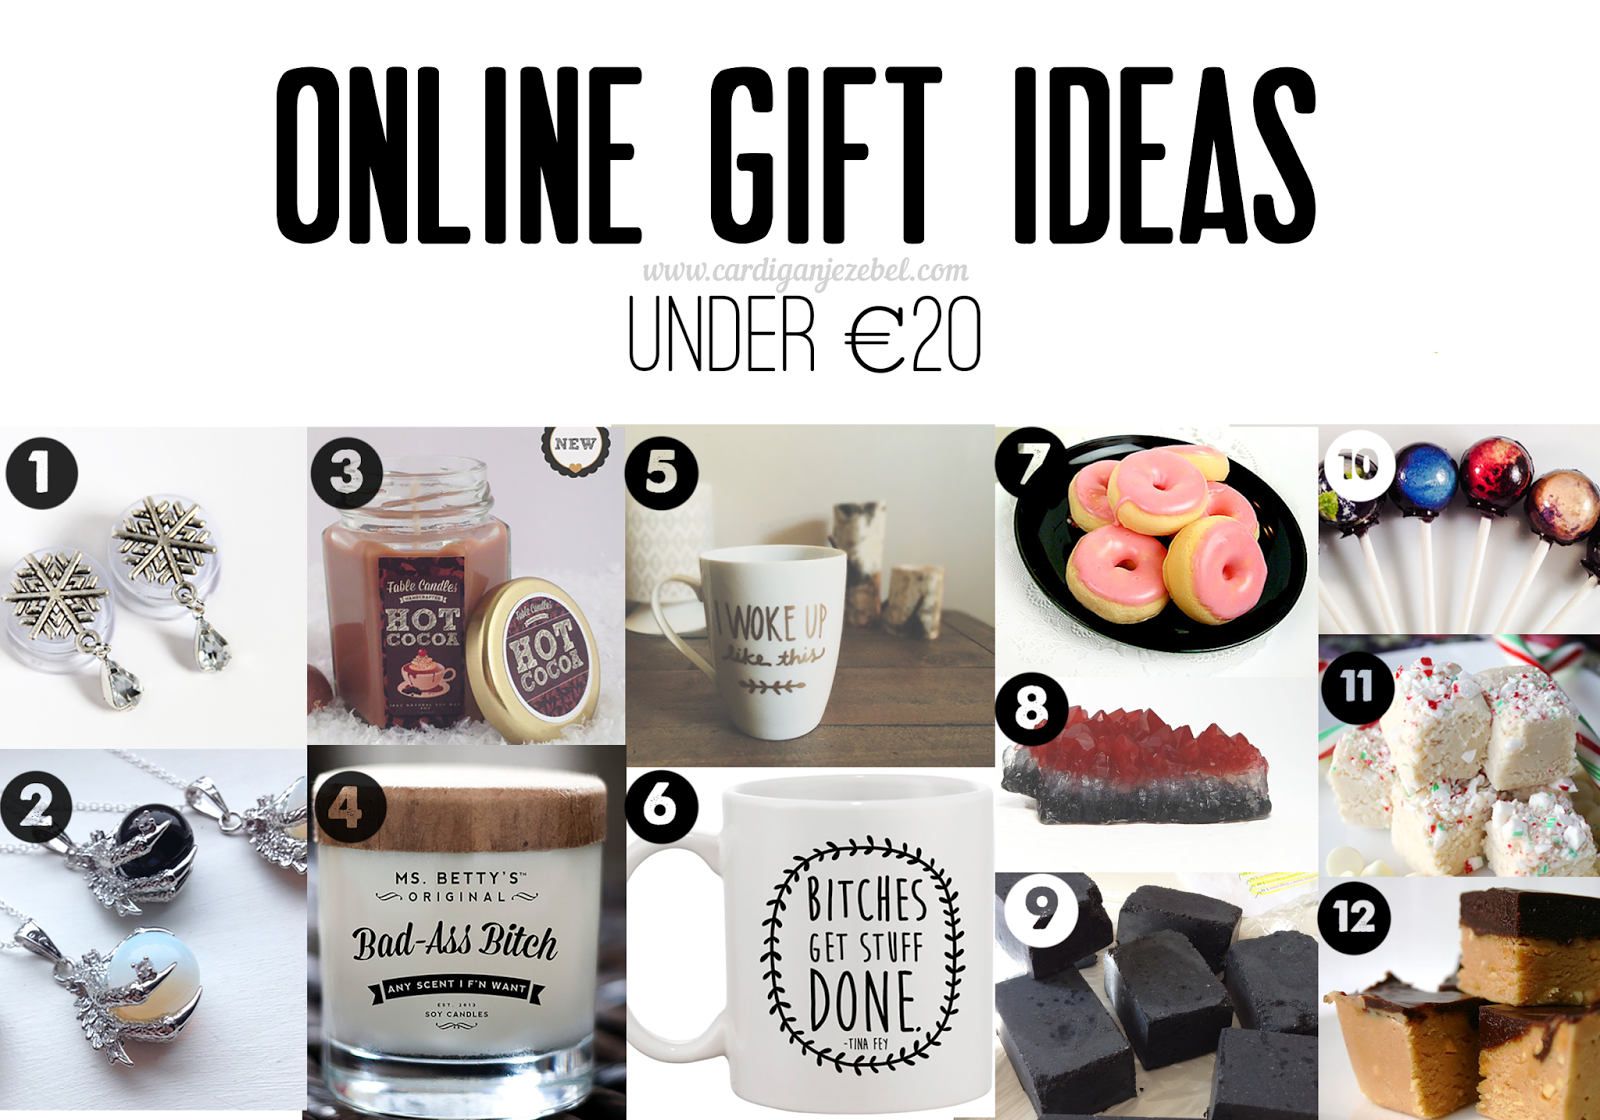 Online Gift Ideas under €20 euro